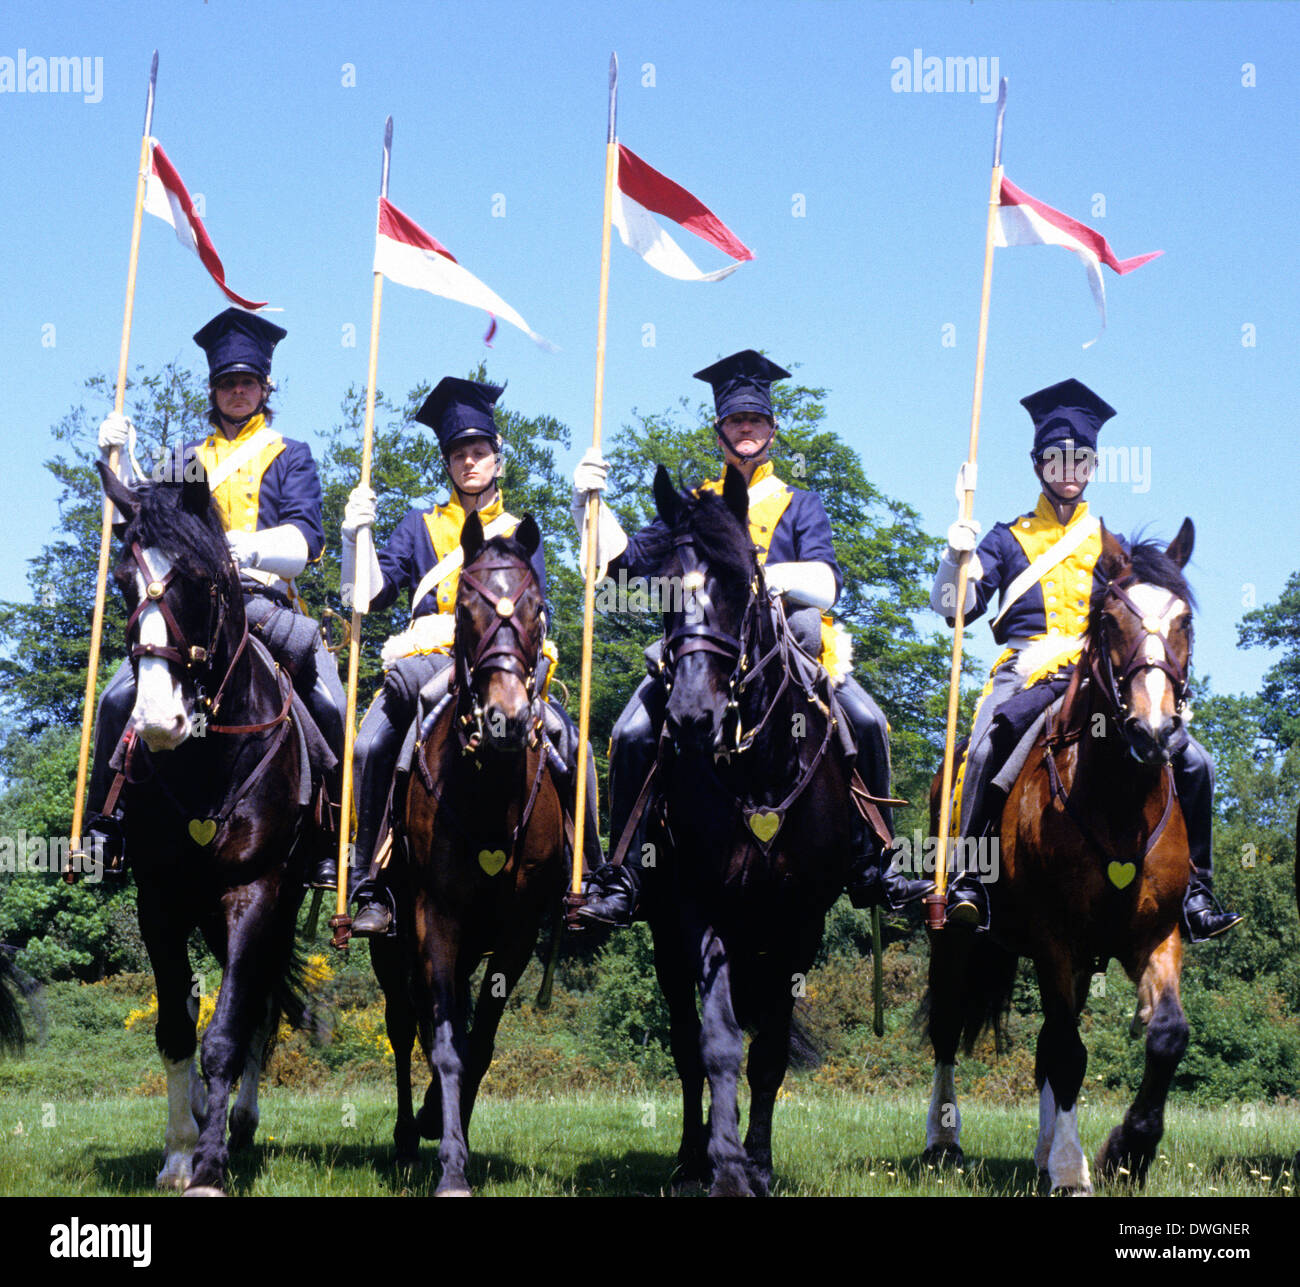 French Napoleonic cavalry 1815, as deployed at battle of Waterloo, chasseurs,  historical re-enactment lances lancers - Stock Image